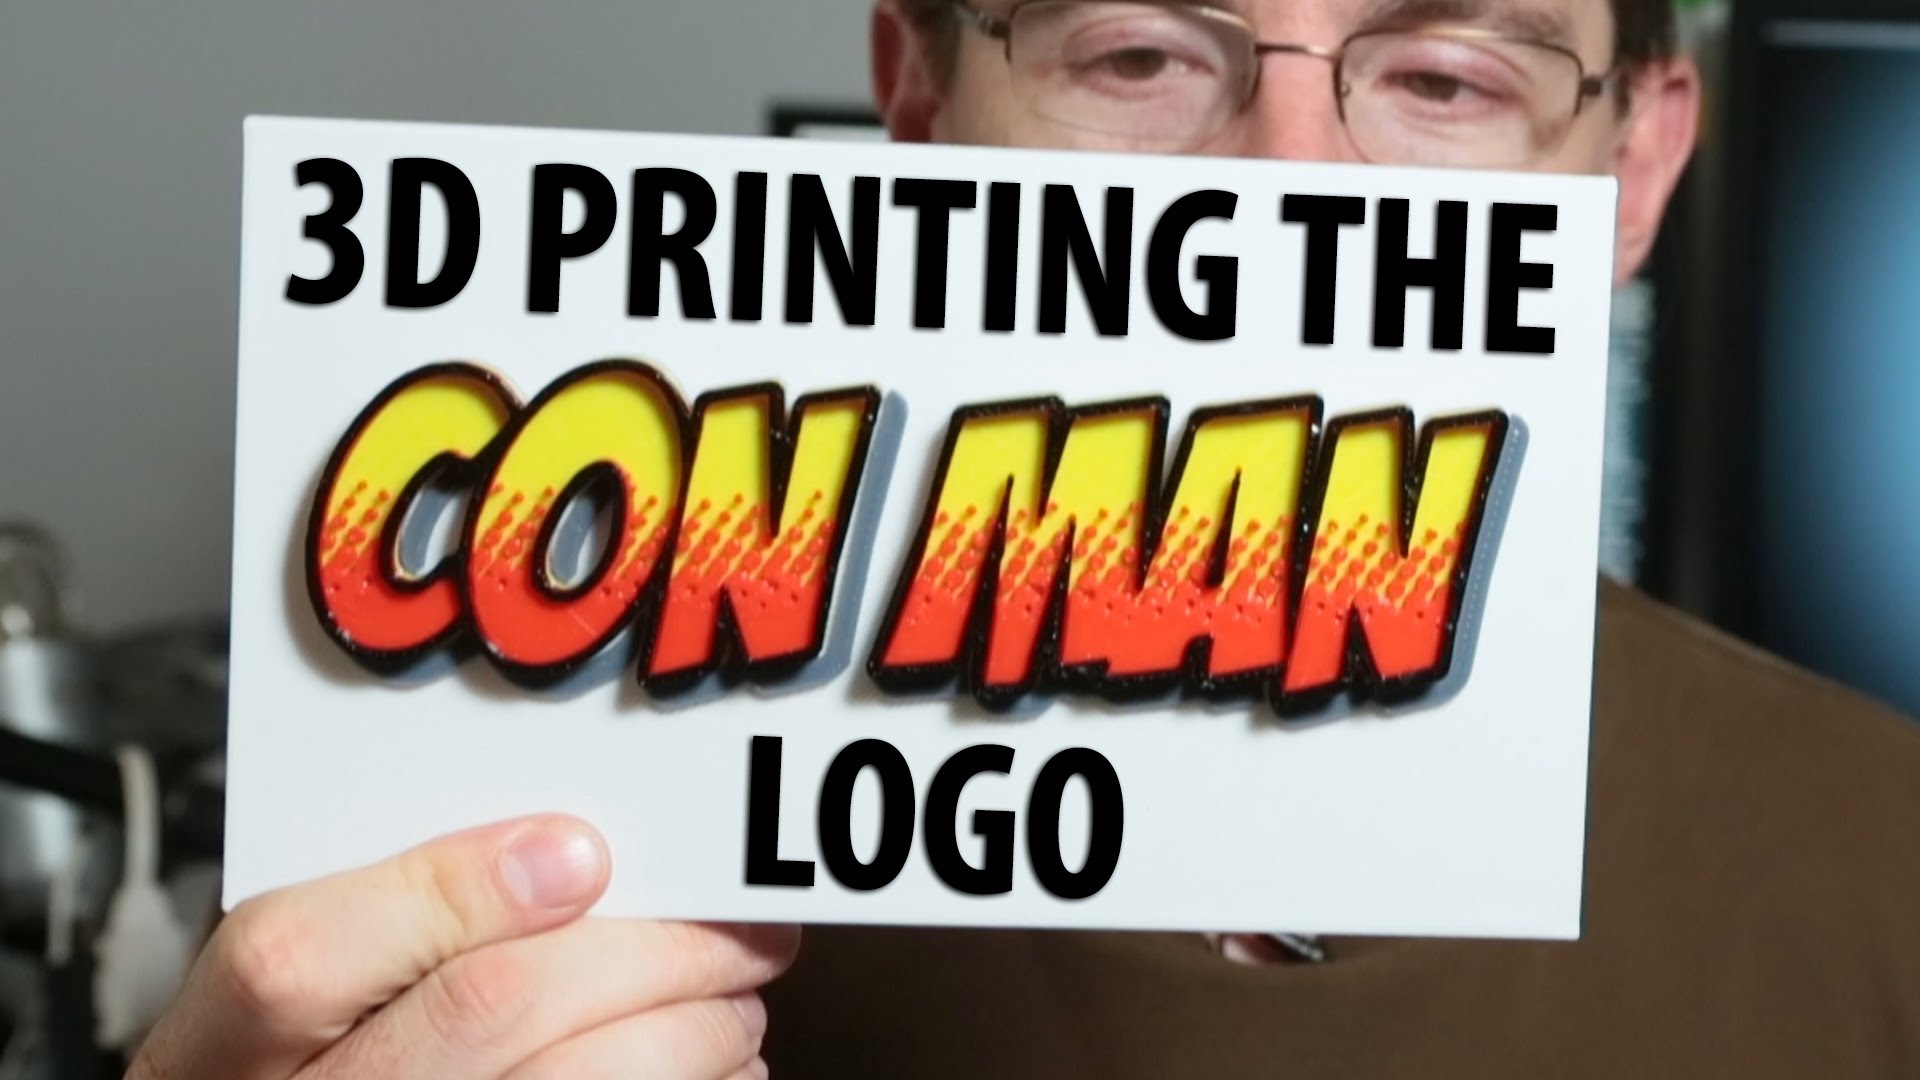 What do 3D Printing, Operation Smile, Con Man, Nathan Fillion & Alan Tudyk have in common?